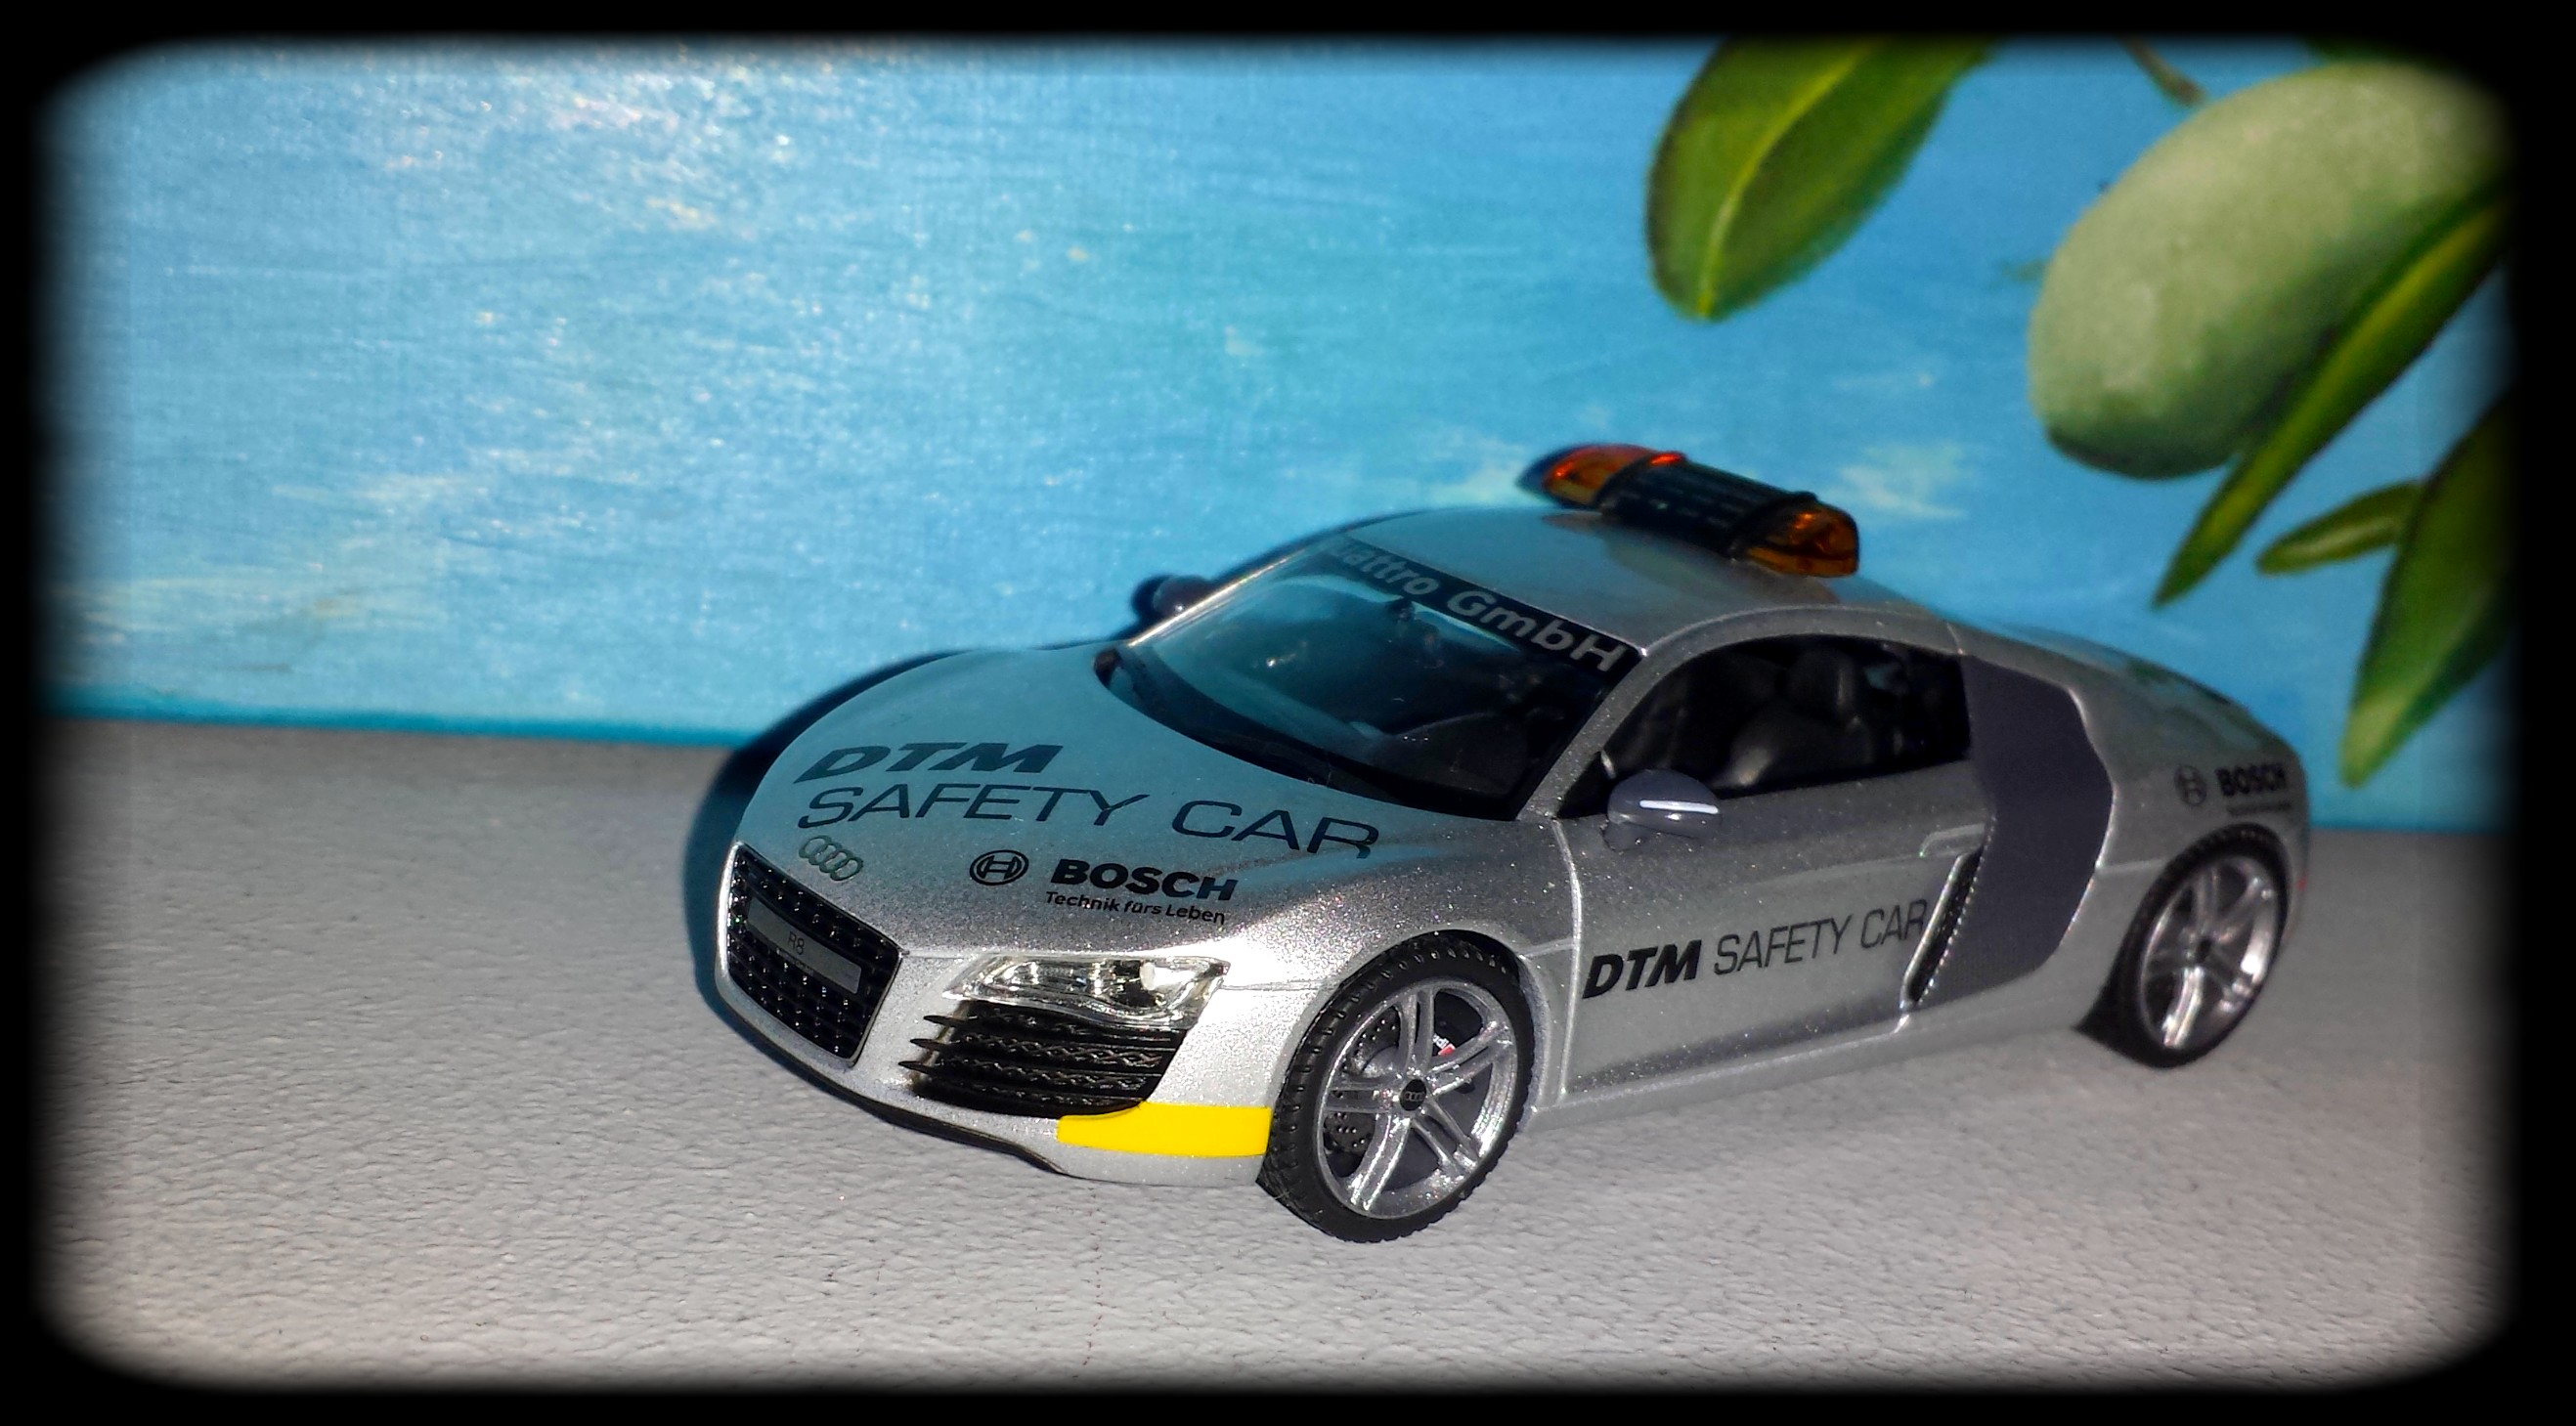 Audi R8 V8 Safety Car DTM by Schuco